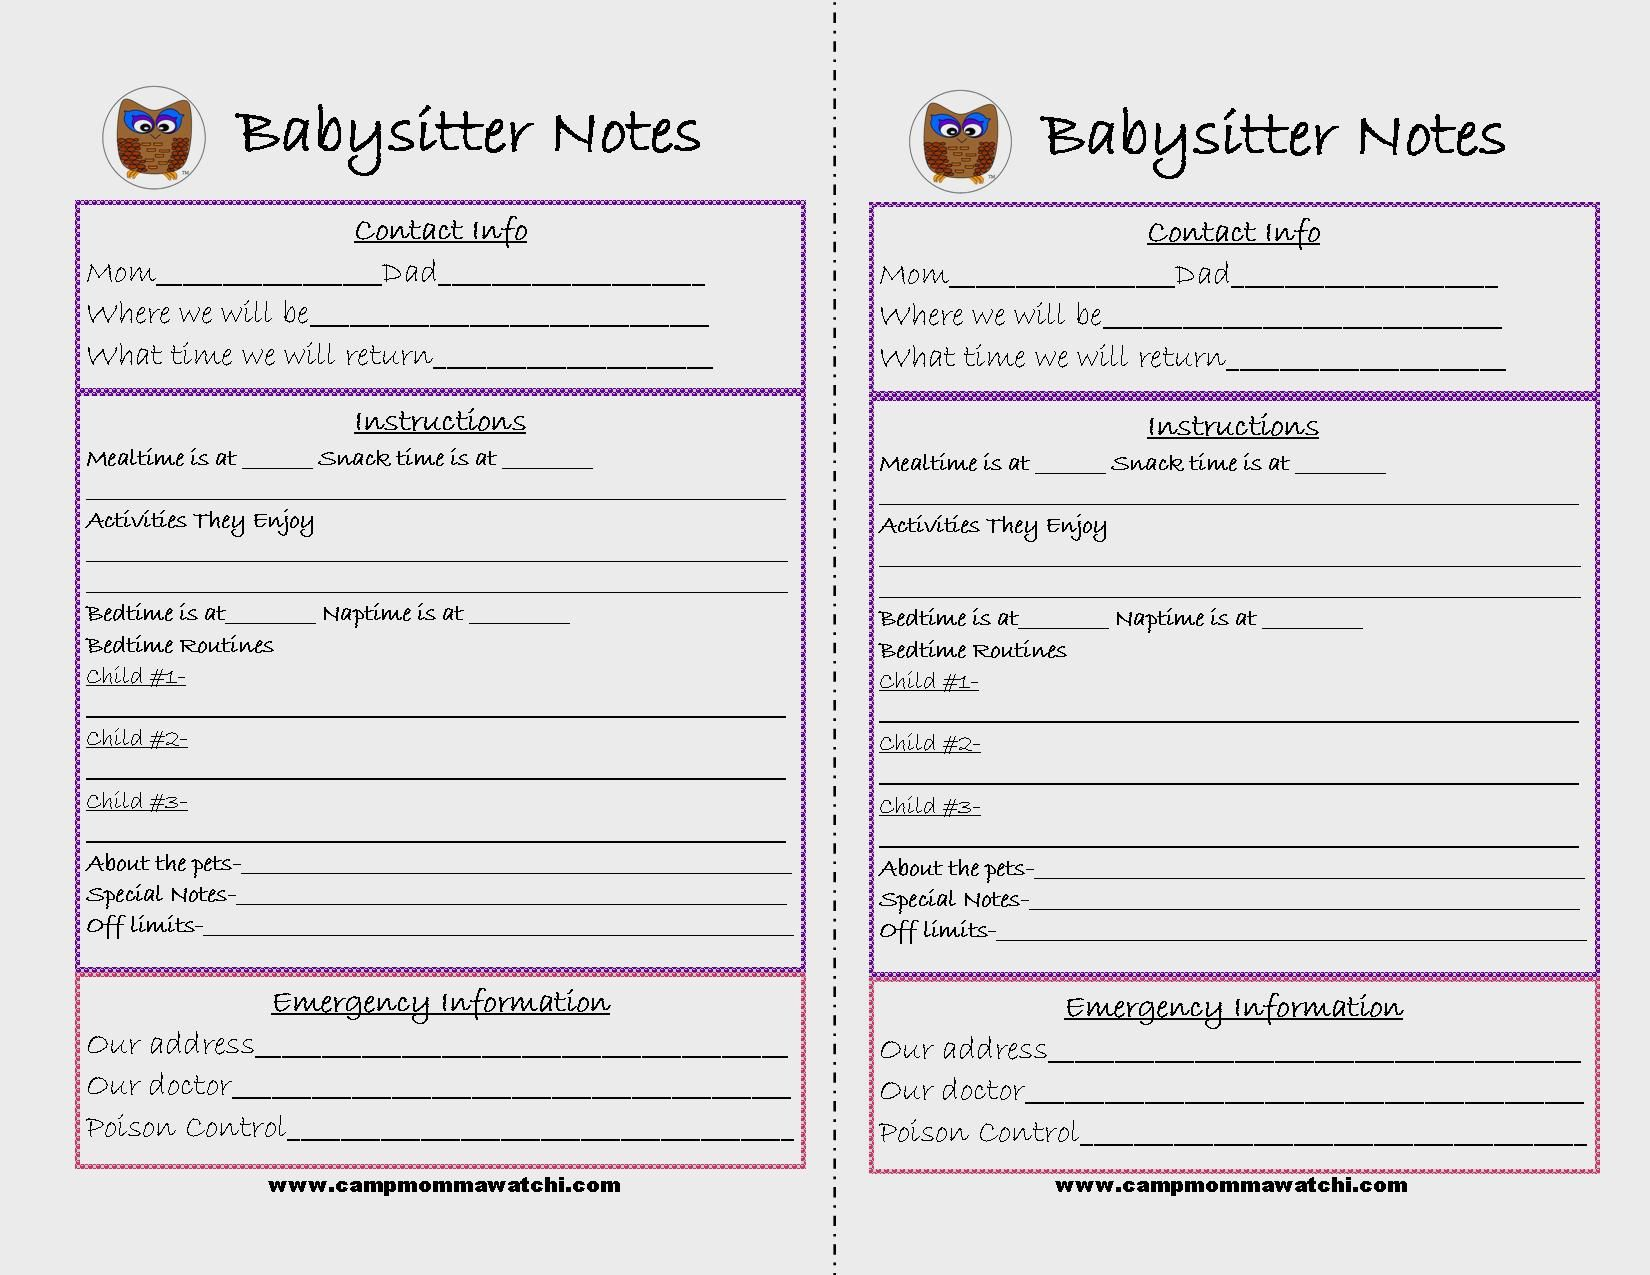 Free Printable Babysitter Notes